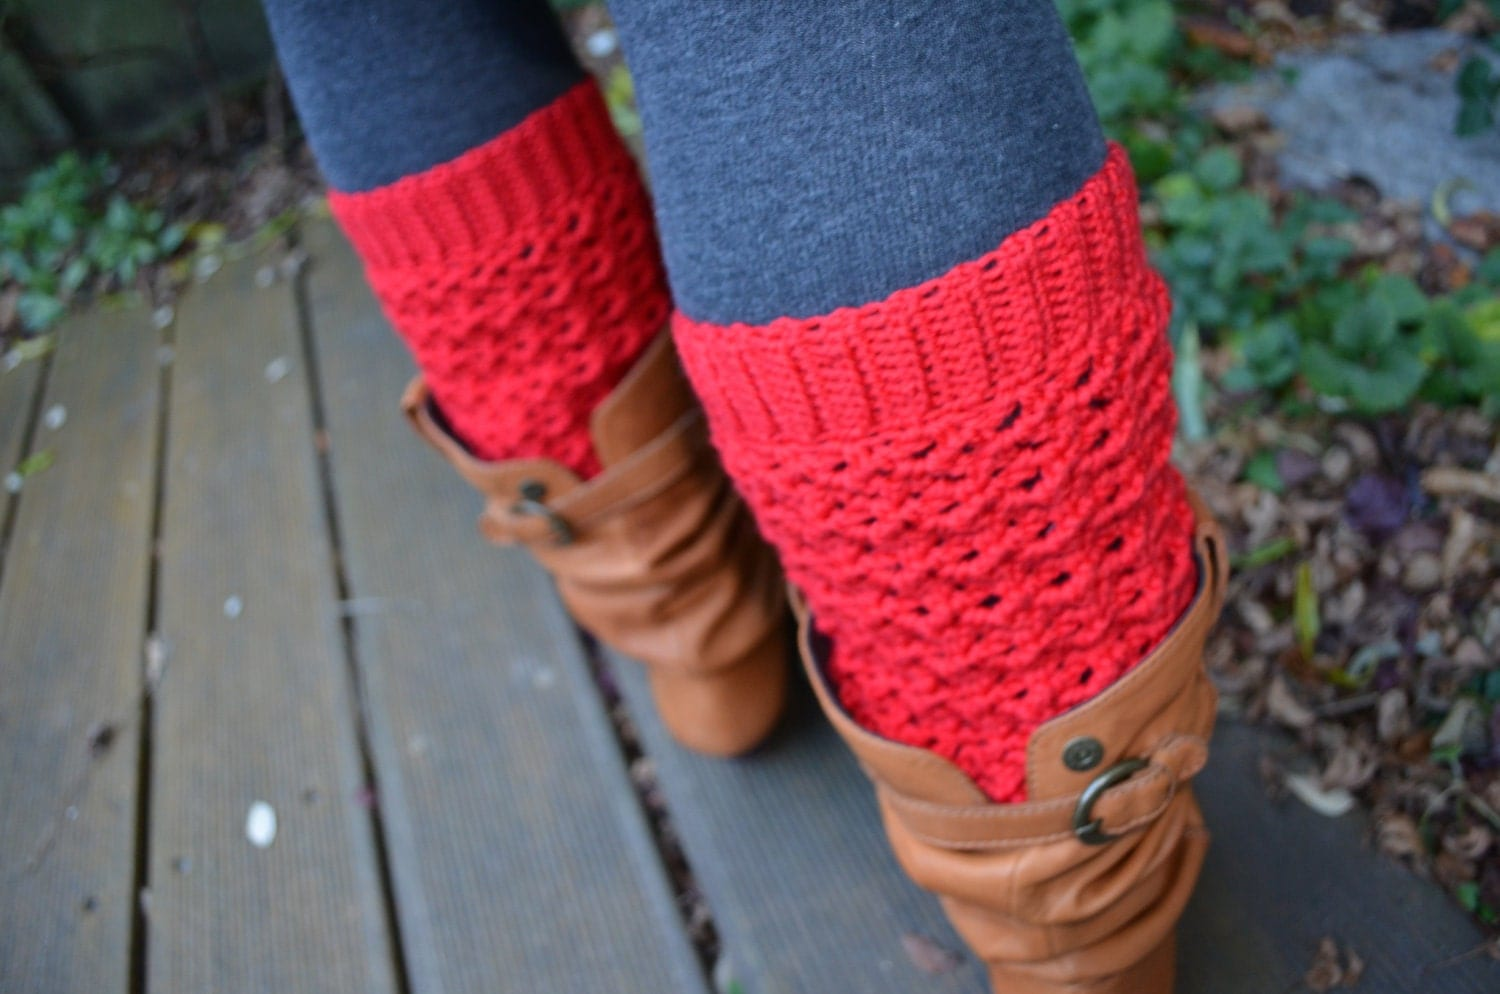 Crochet Leg Warmers : Crochet pattern : lacy leg warmers by vicarno on Etsy